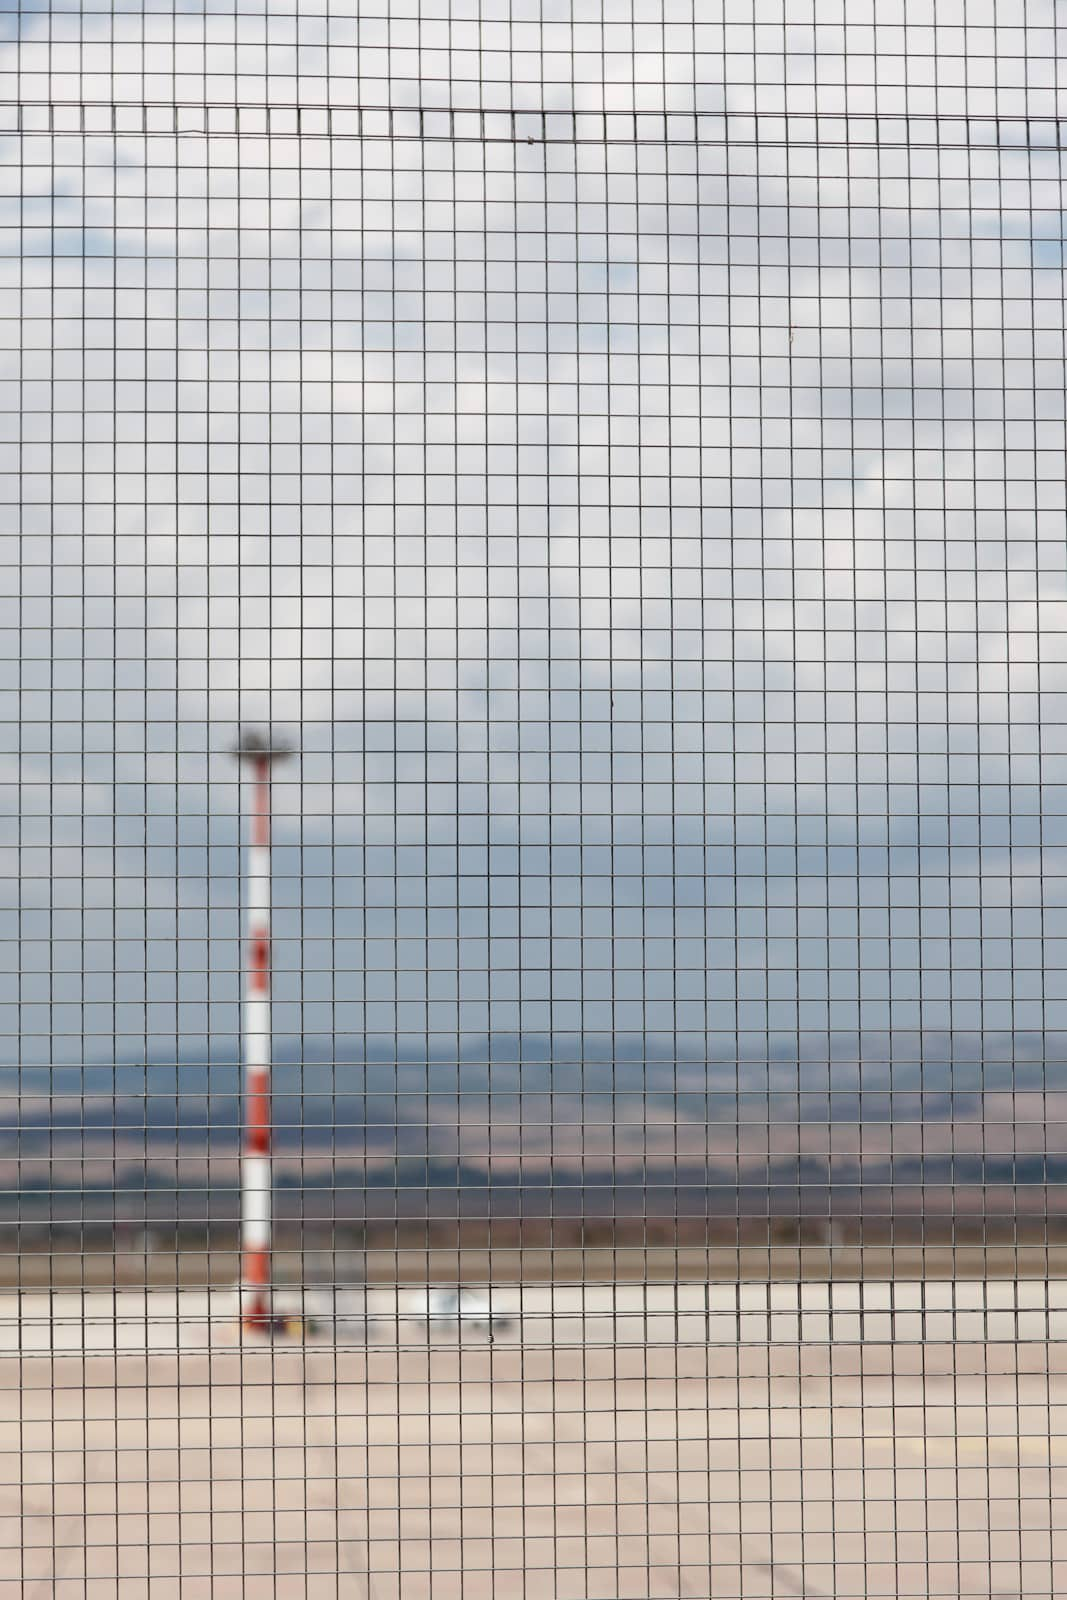 photo of airport apron through wire mesh fence